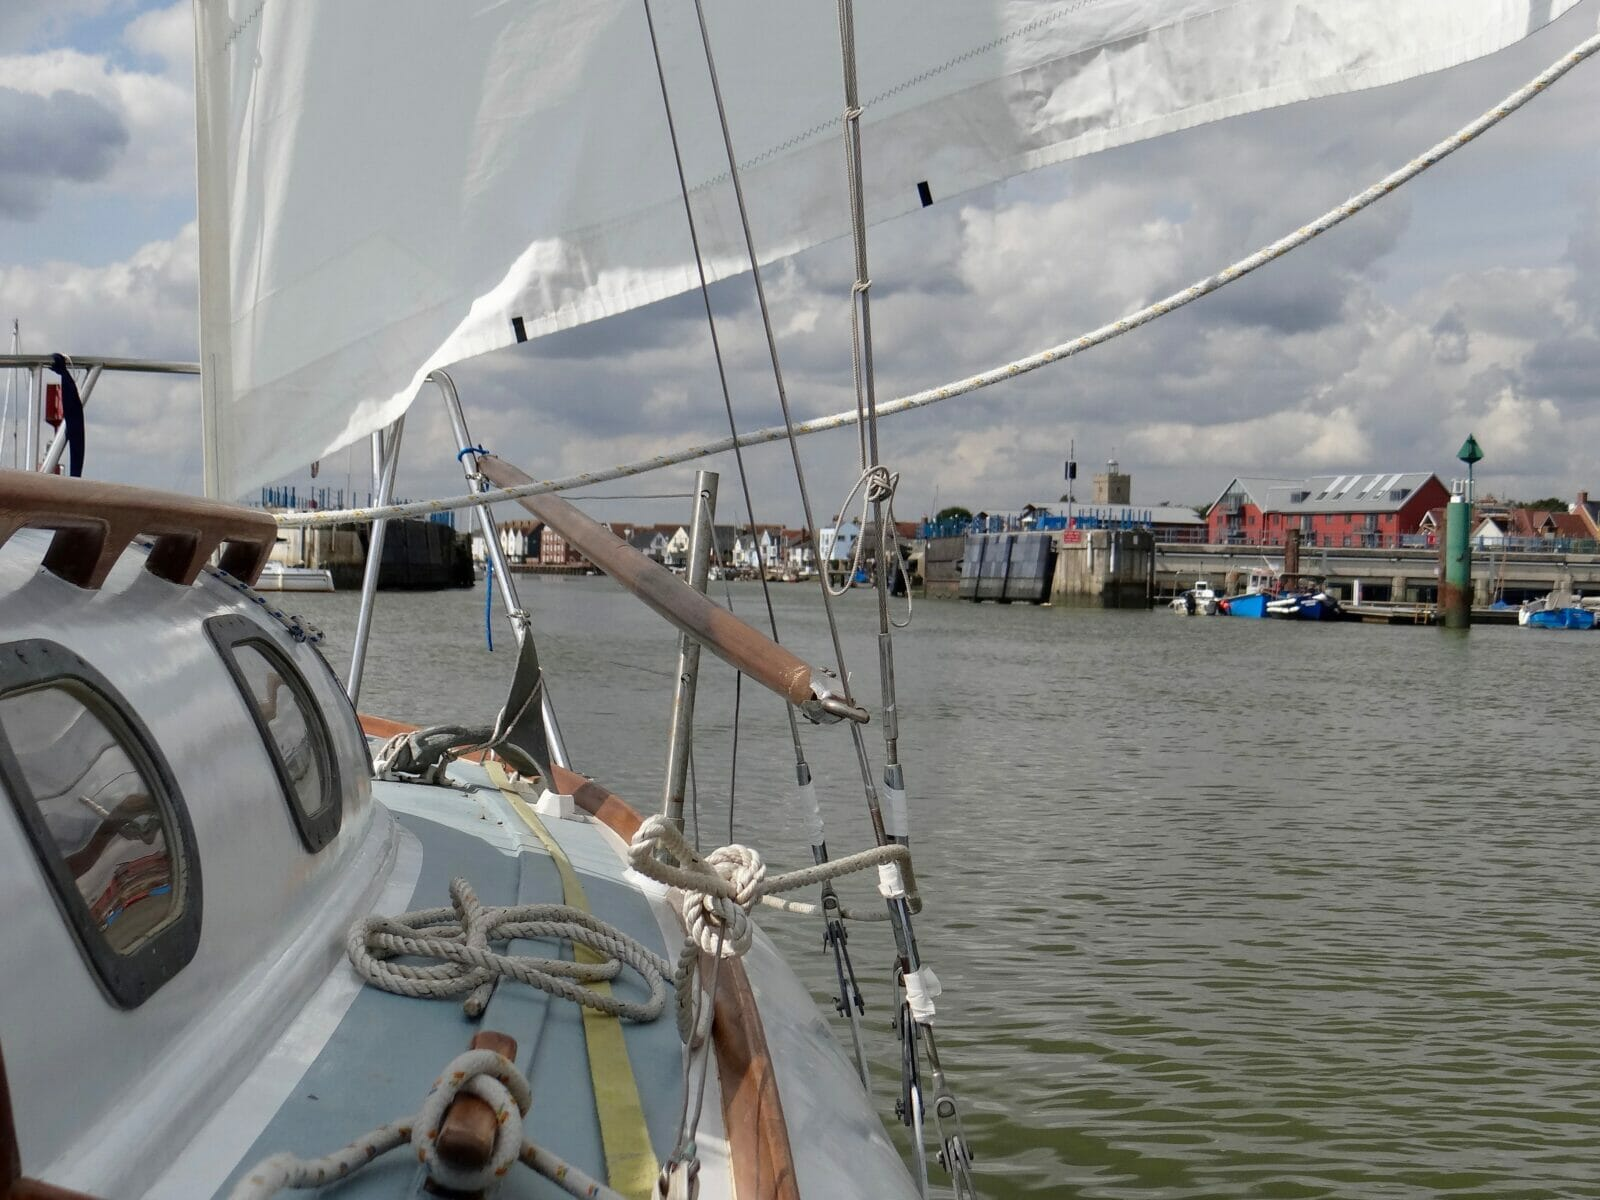 Approaching the barrier at Wivenhoe